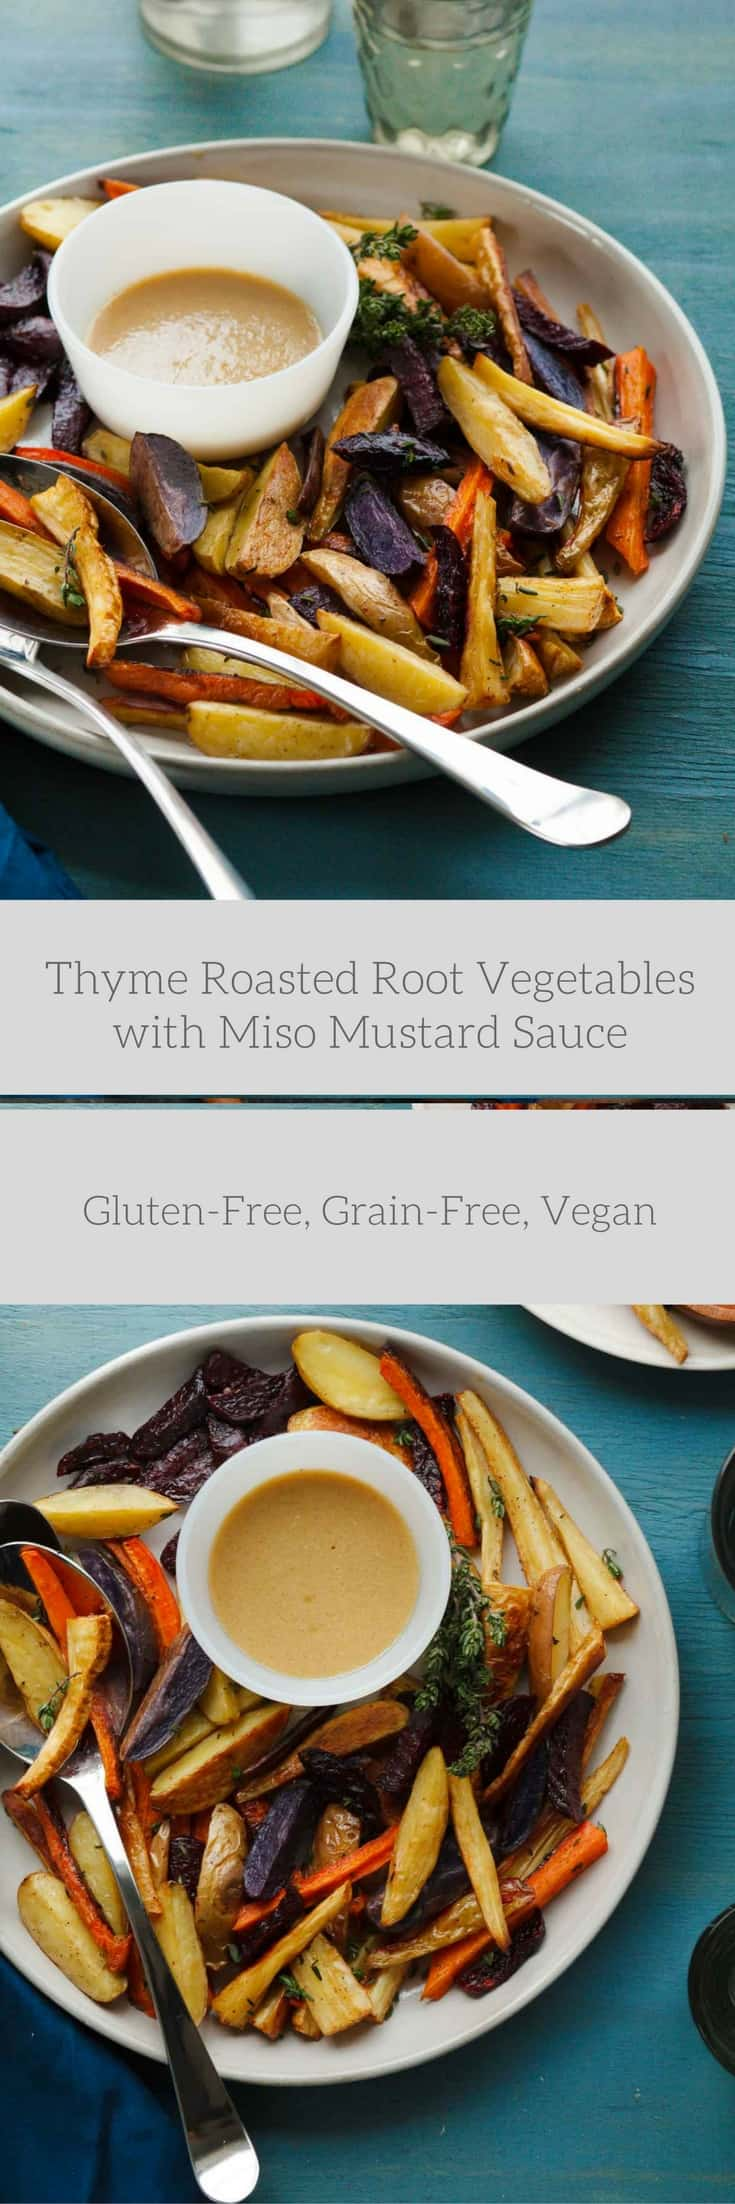 ... Root Vegetables with Miso Mustard Sauce | Gourmande in the Kitchen